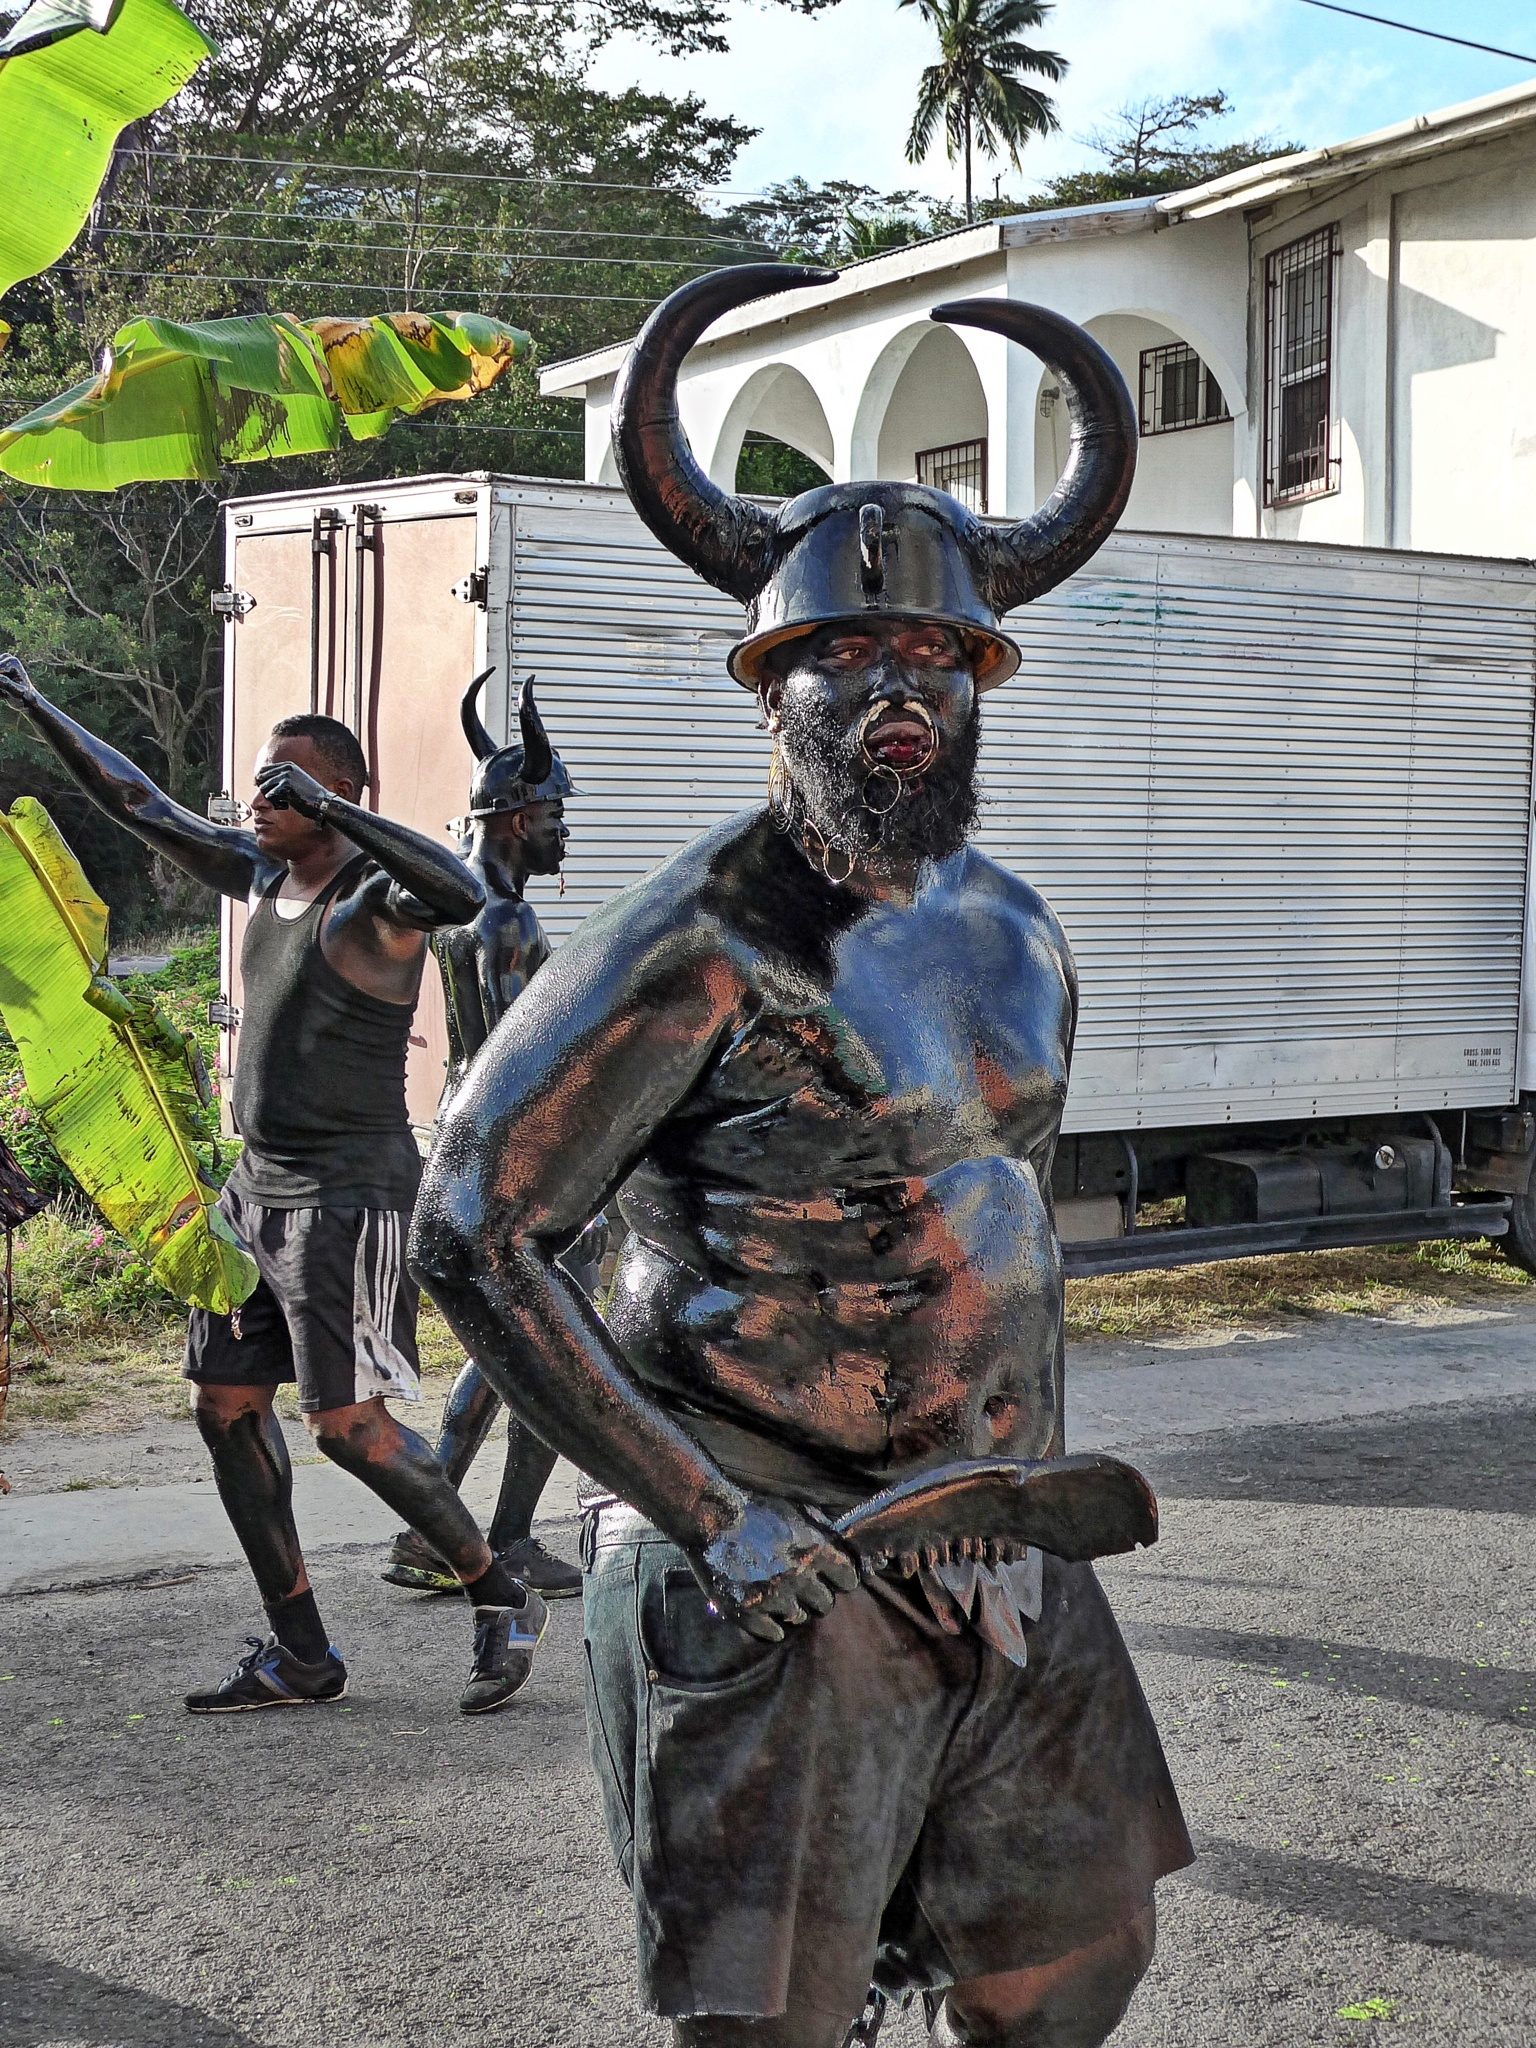 CARRIACOU Carnival by Nancy A Wall